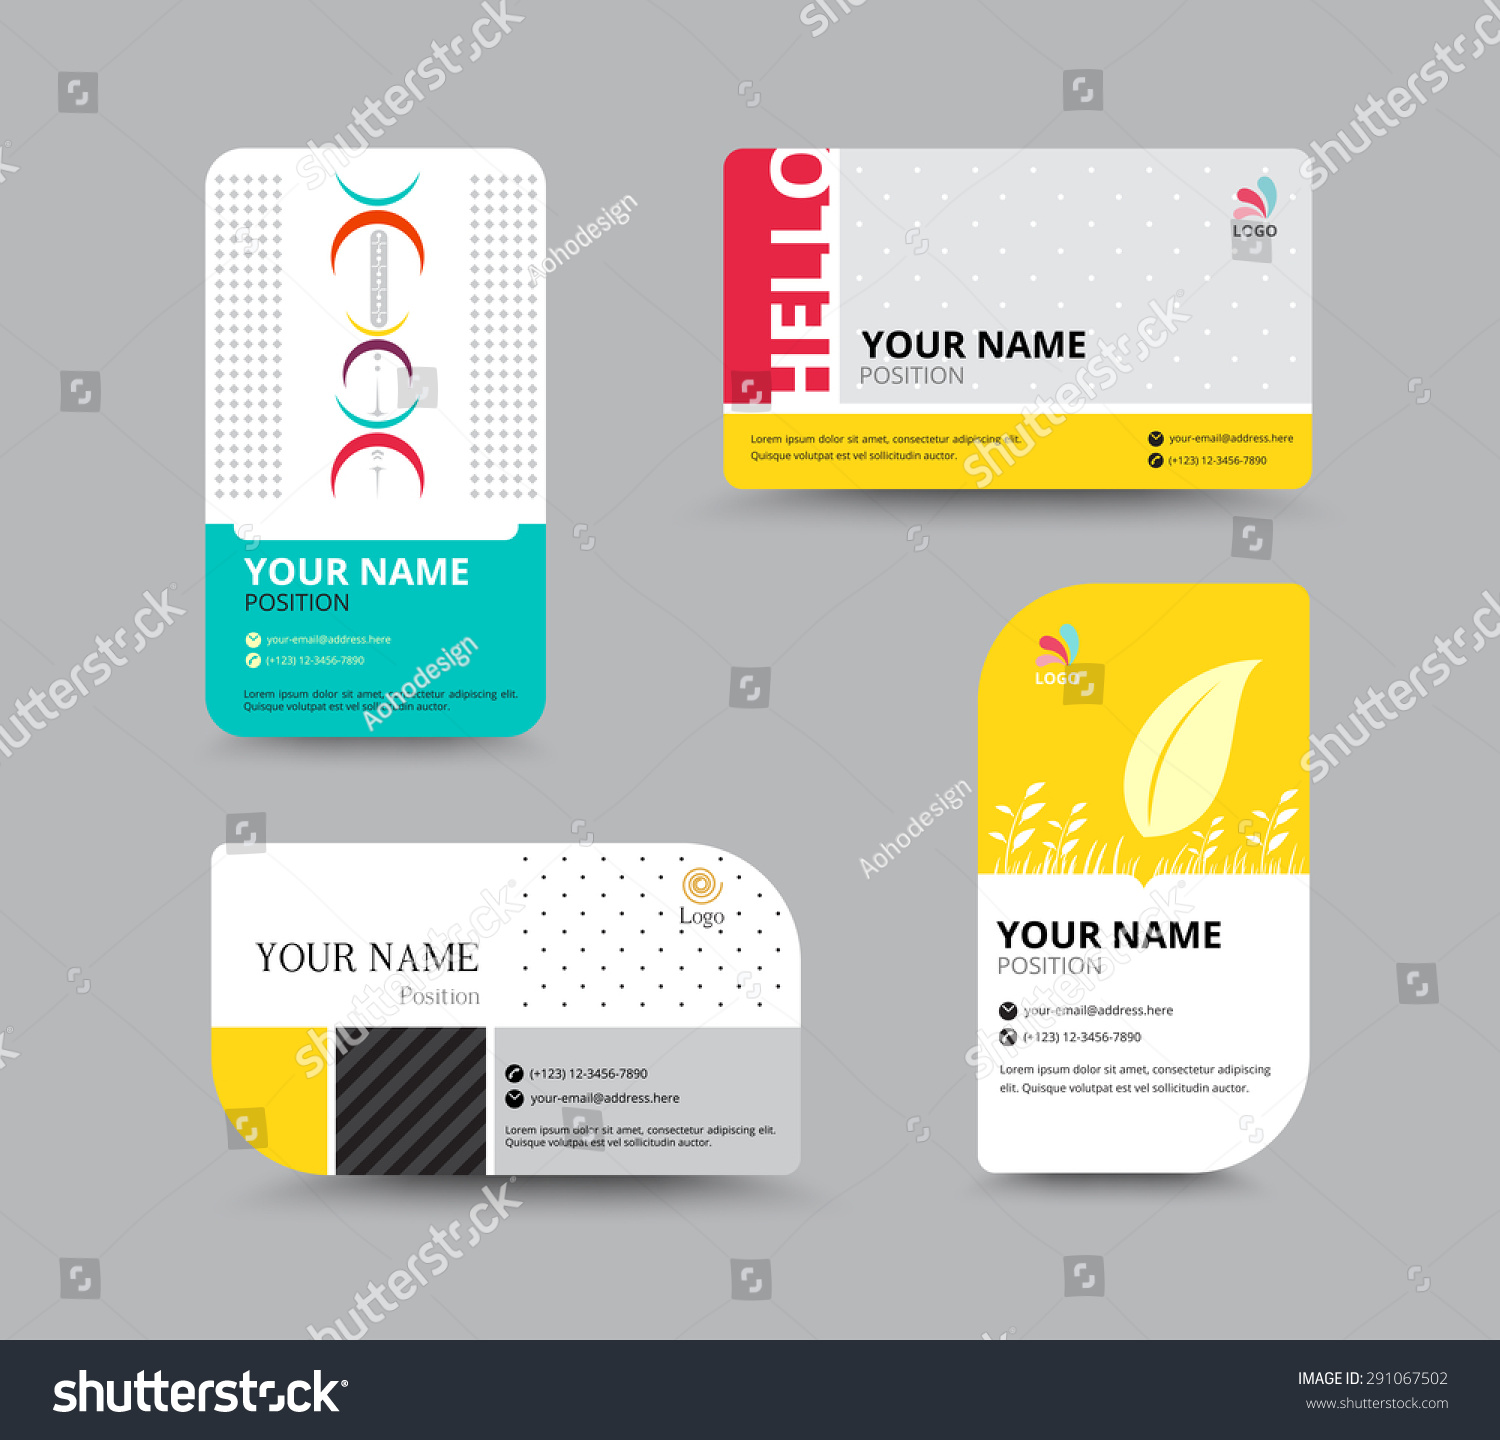 Sample name card sample profit and loss statement funeral business card template name card design stock vector 291067502 stock vector business card template name card design for business include sample text layout magicingreecefo Choice Image